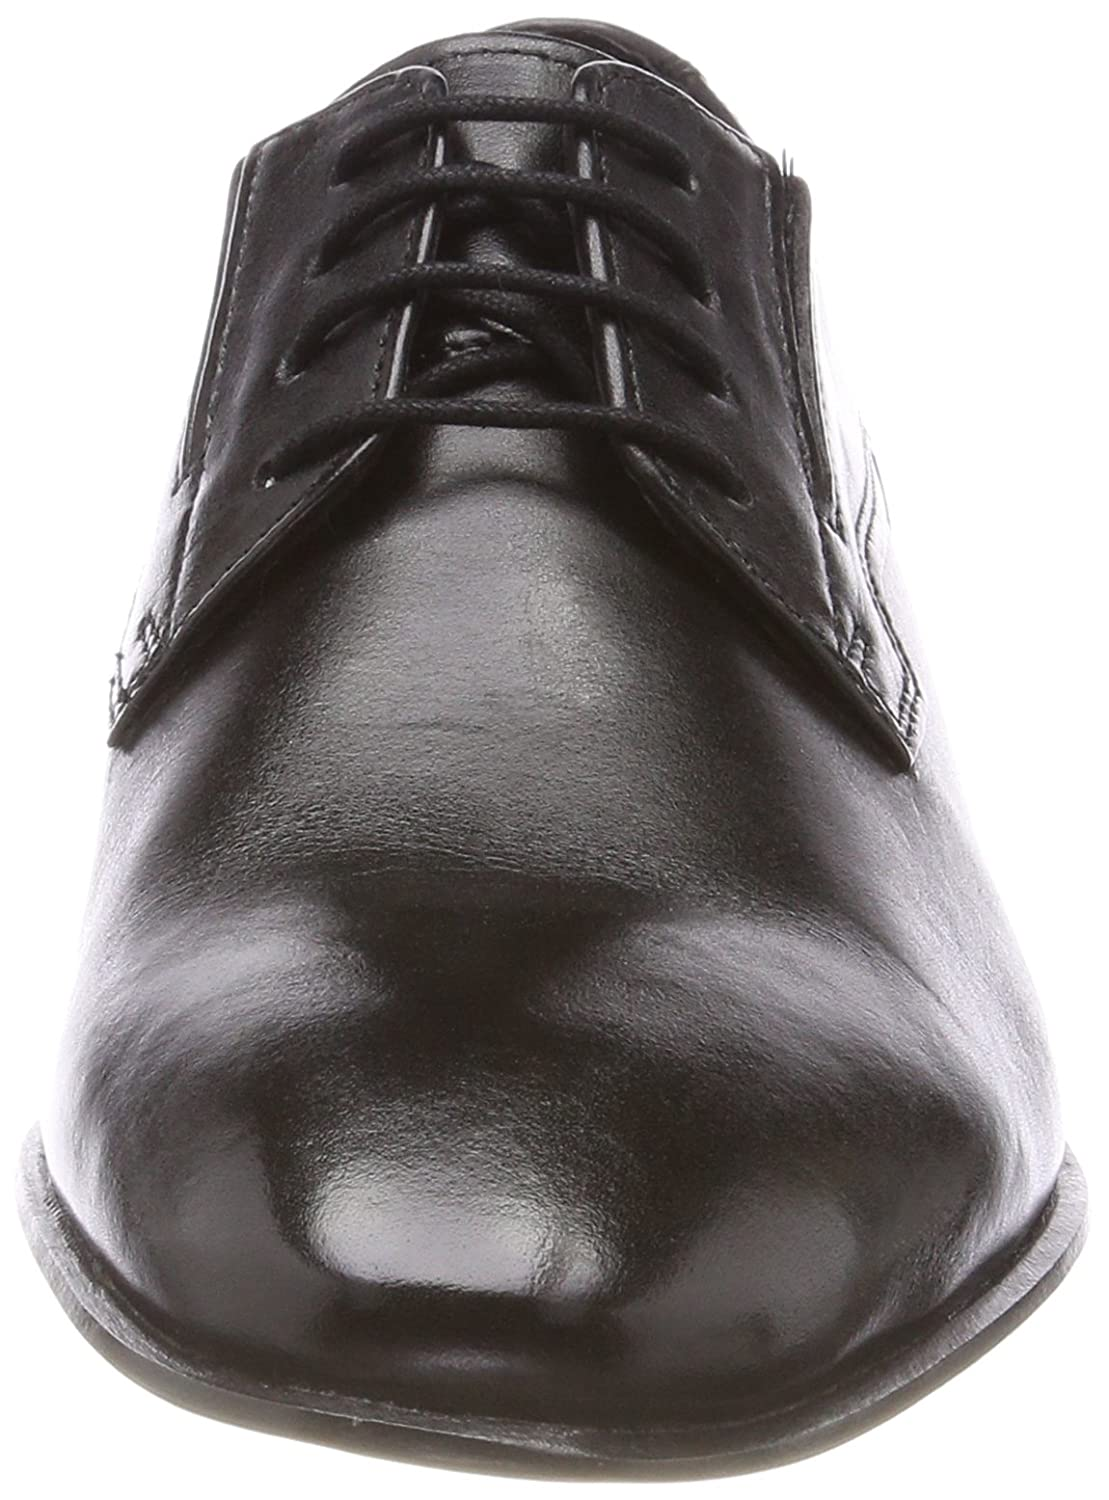 Mens-Lace-Up Schwarz 650504-1